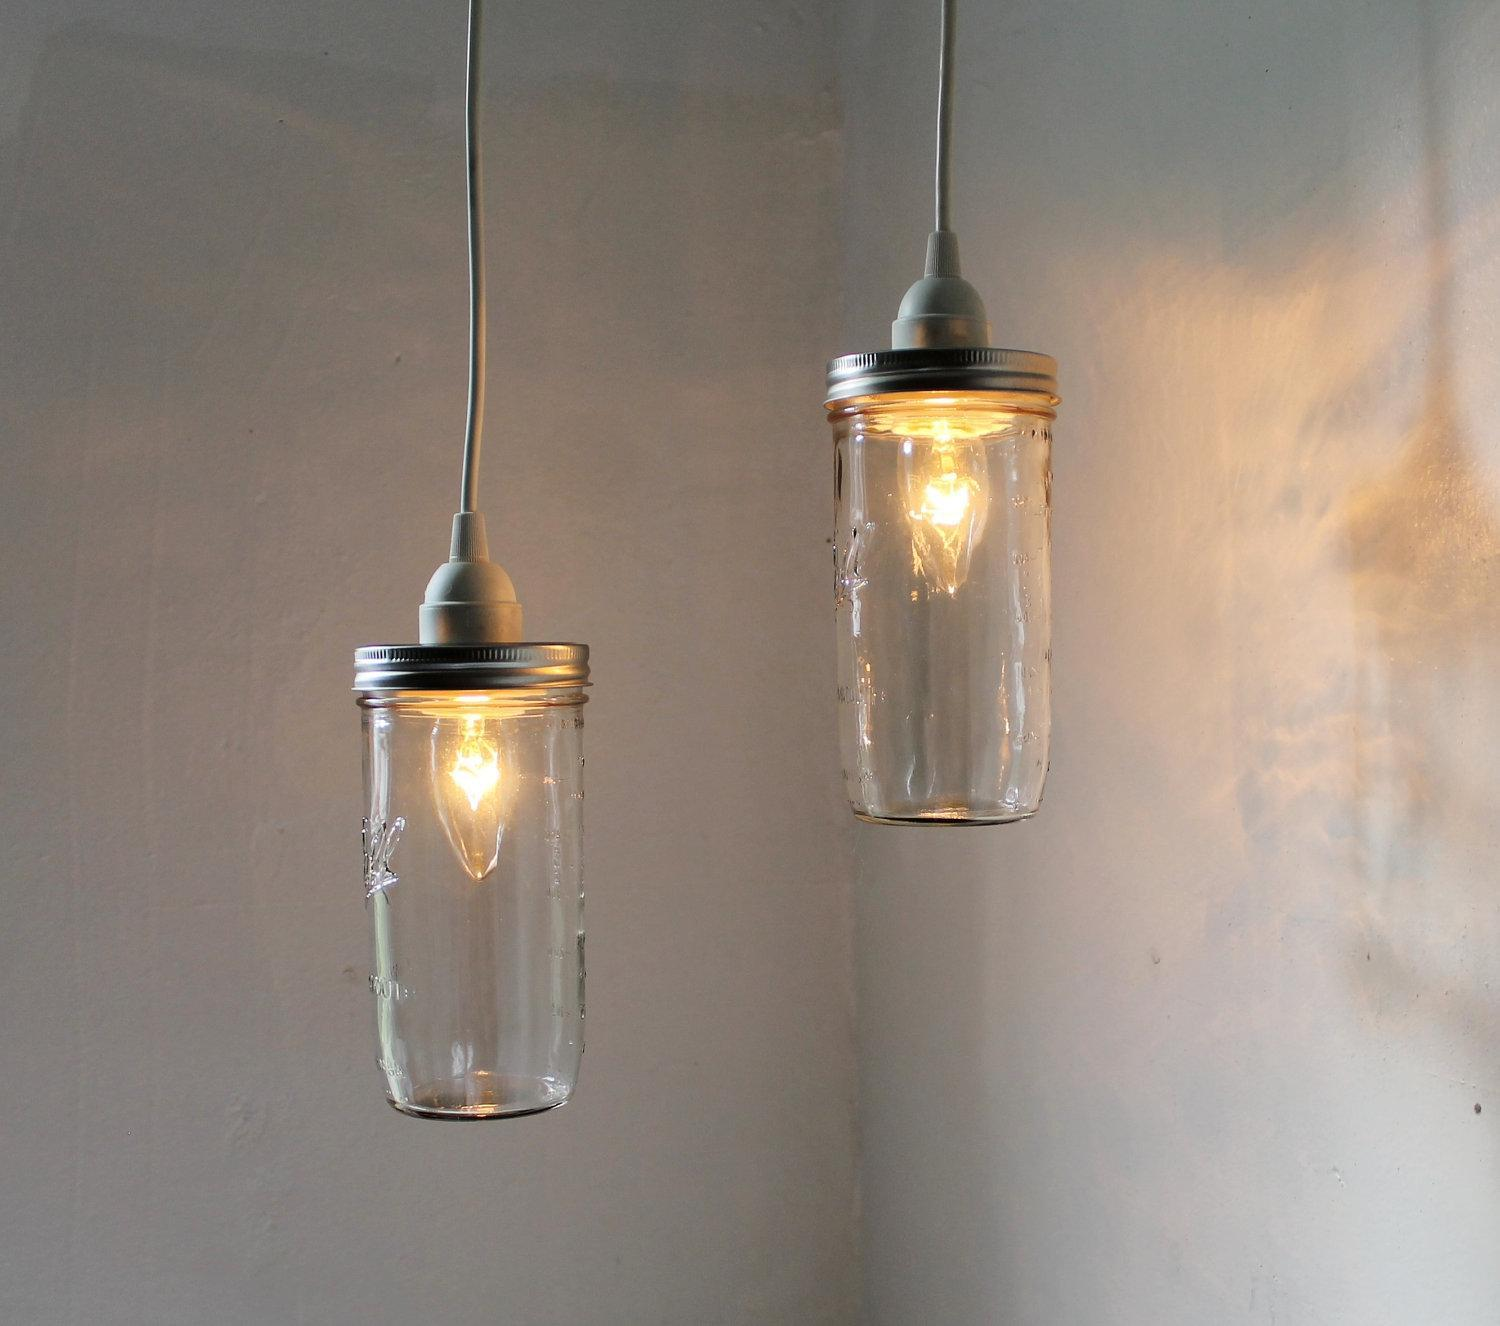 Image of: Corner Sconce Style